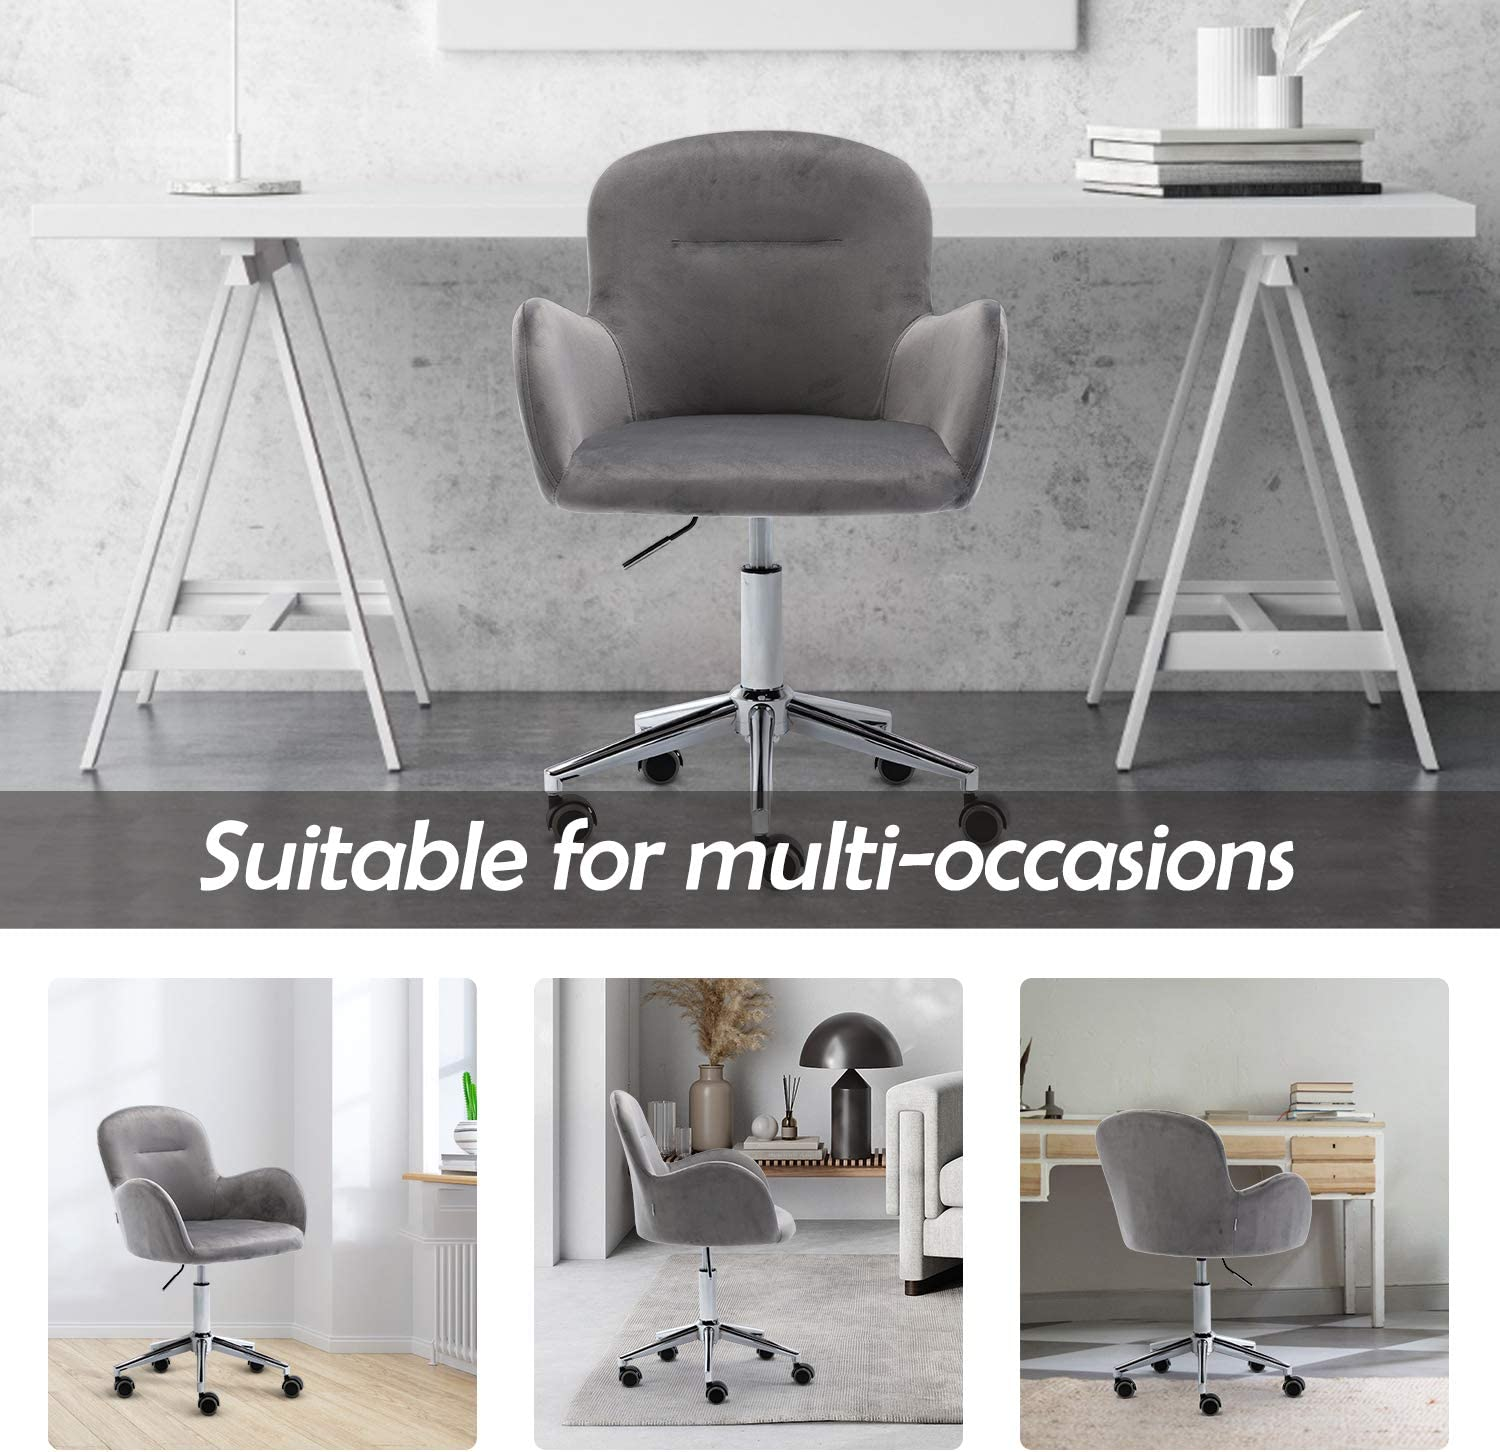 Modern Design Chair with Soft Seat for Living Room Beige Home Chair with Metal Base and Arms ARCTICSCORPION Velvet Desk Chair Office Adjustable Height Swivel Shell Chair Bedroom